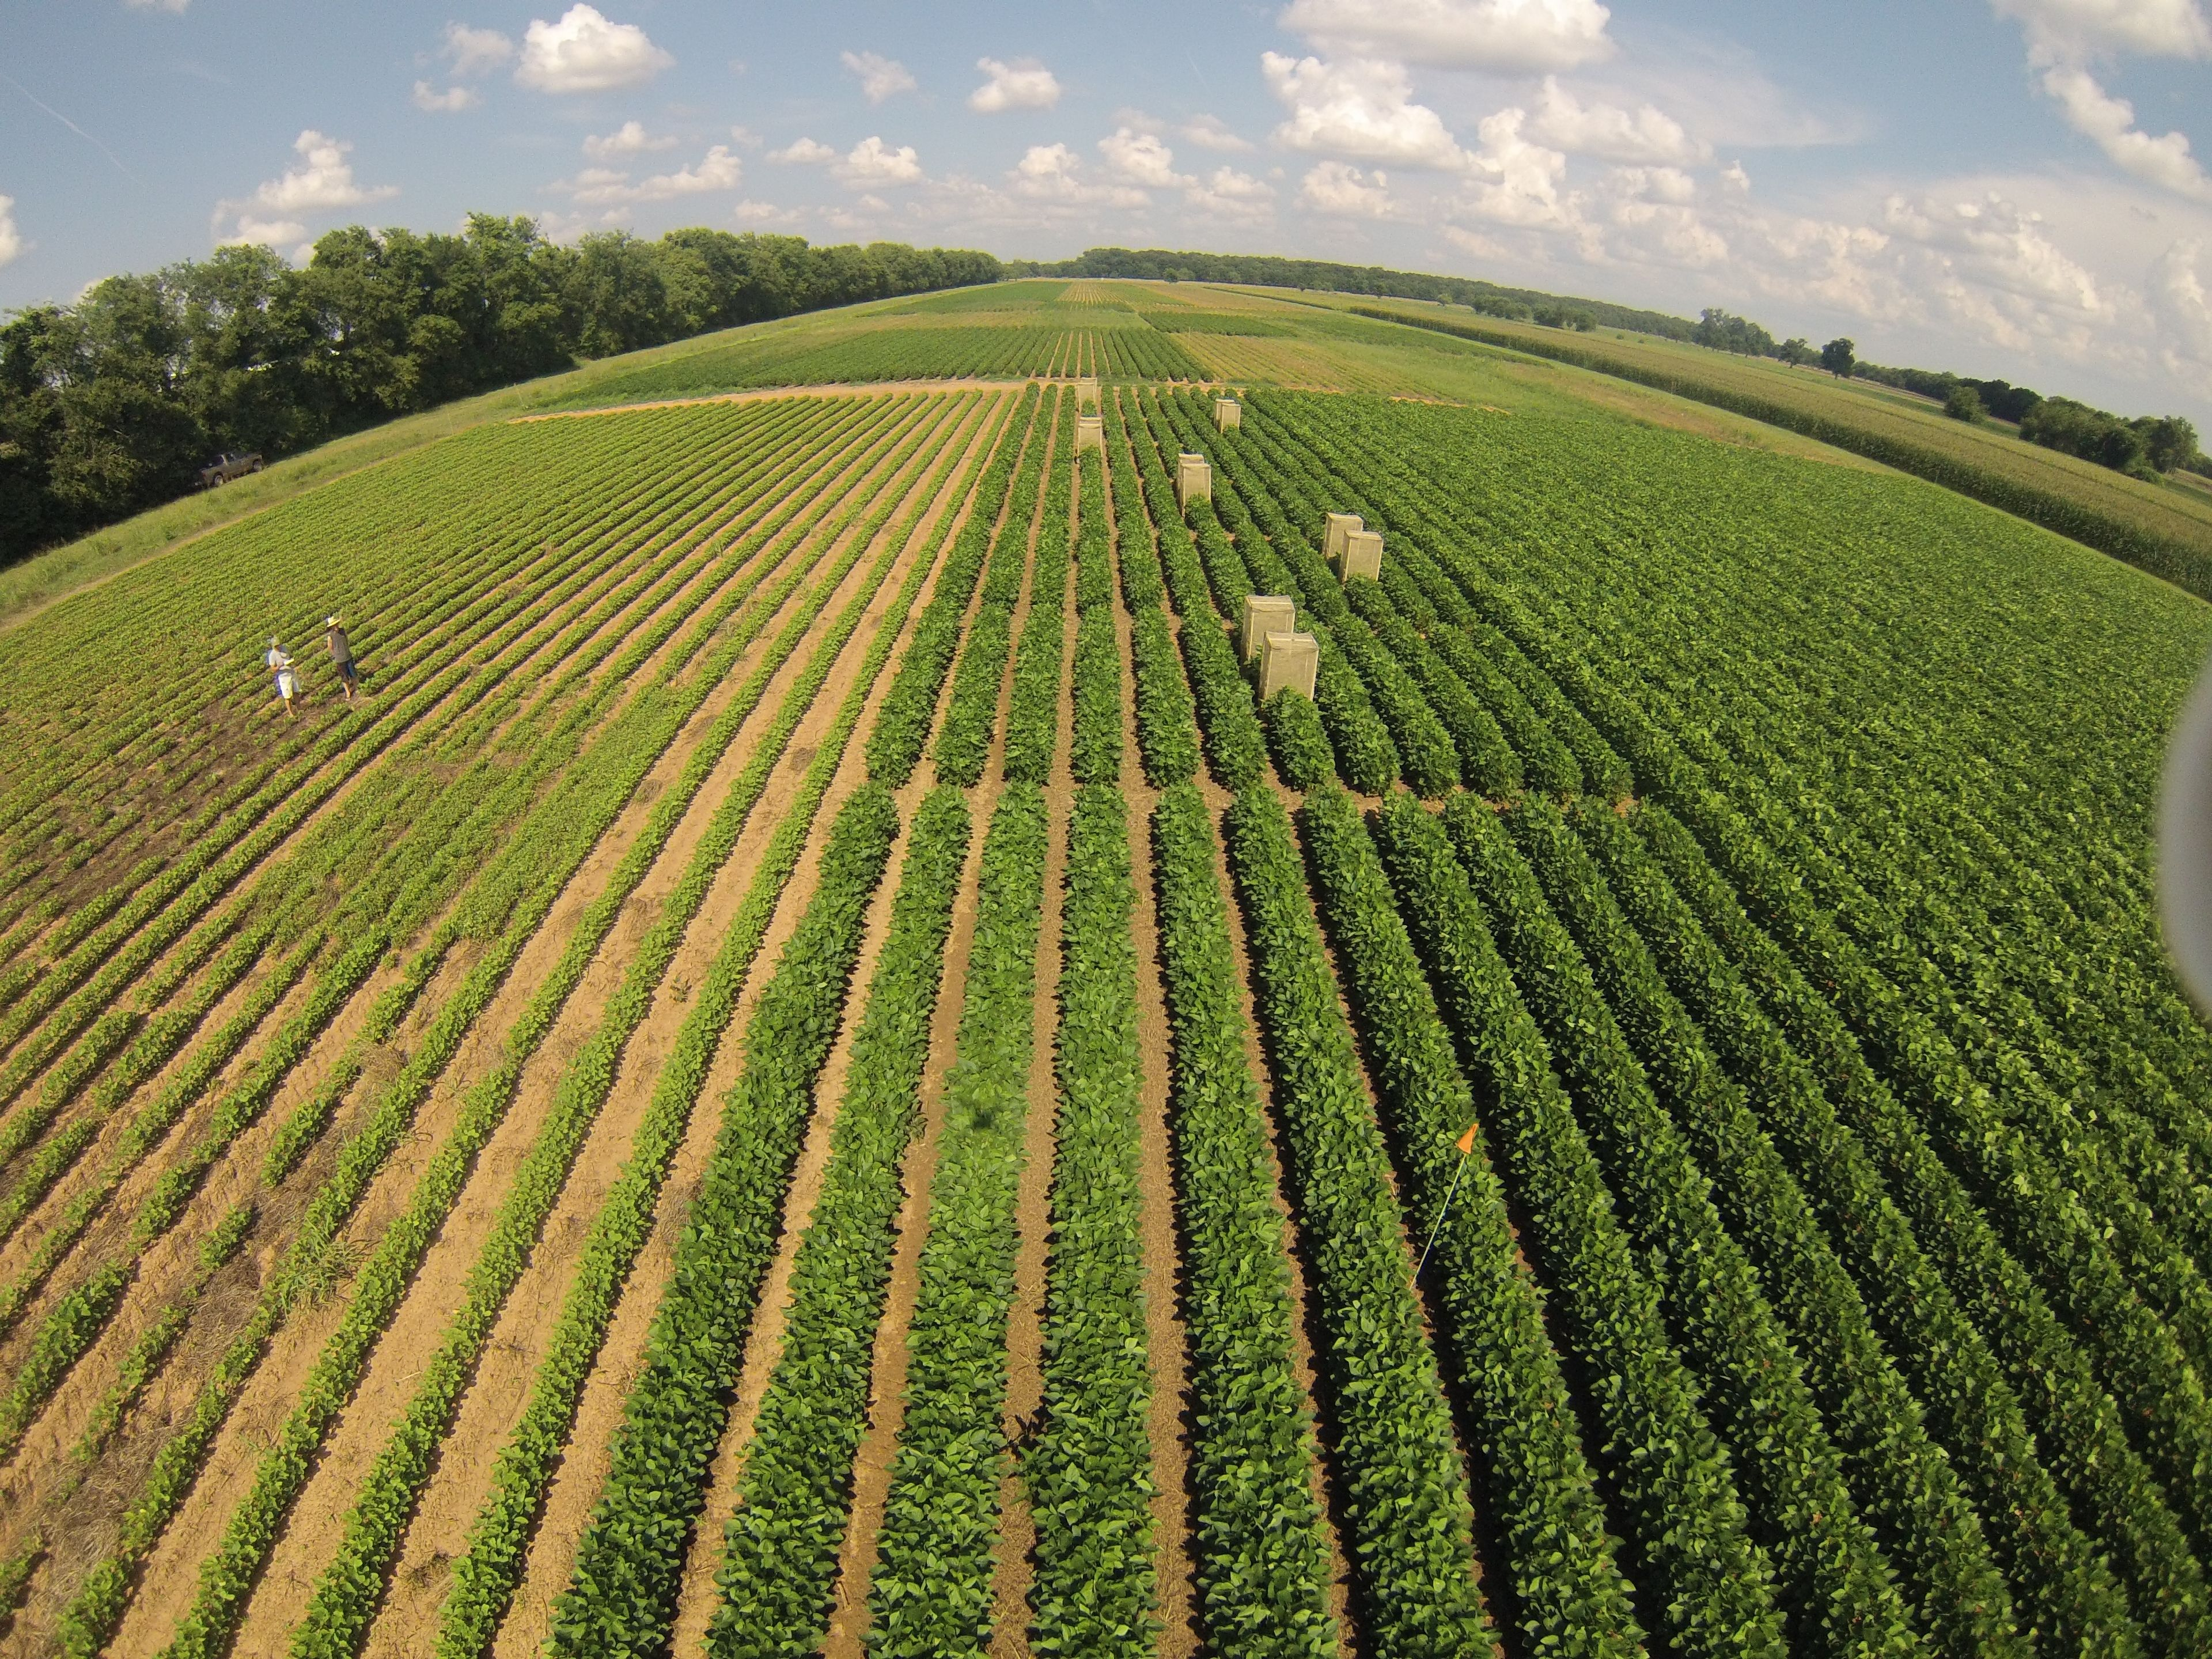 Crop Fields Aerial images | Crop field, Aerial images ...